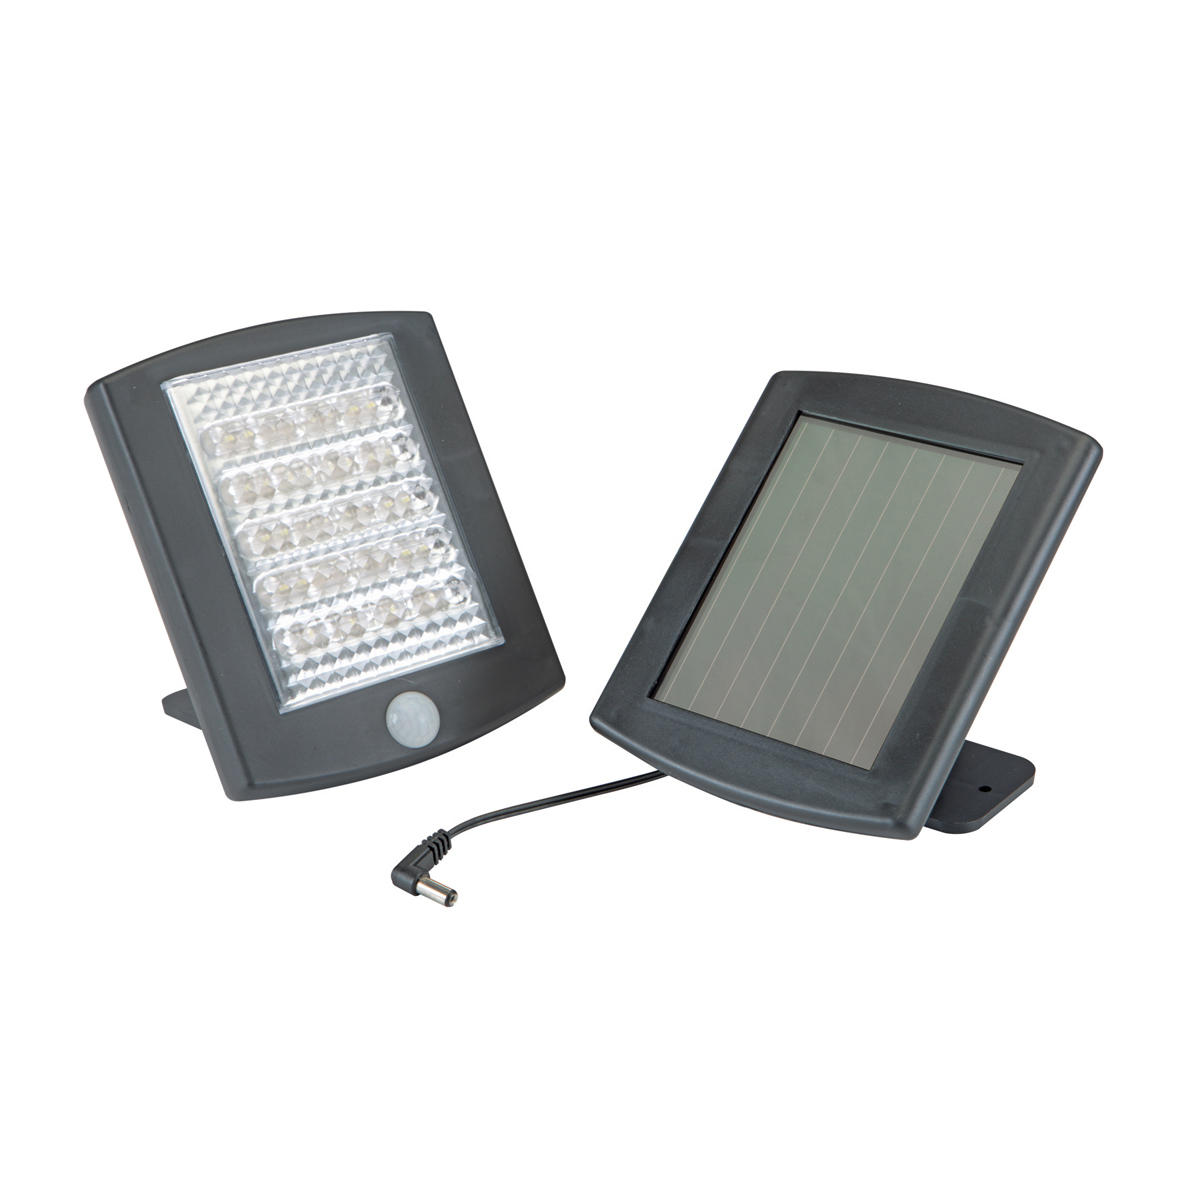 products solar light pro security wedge lighting eco lights